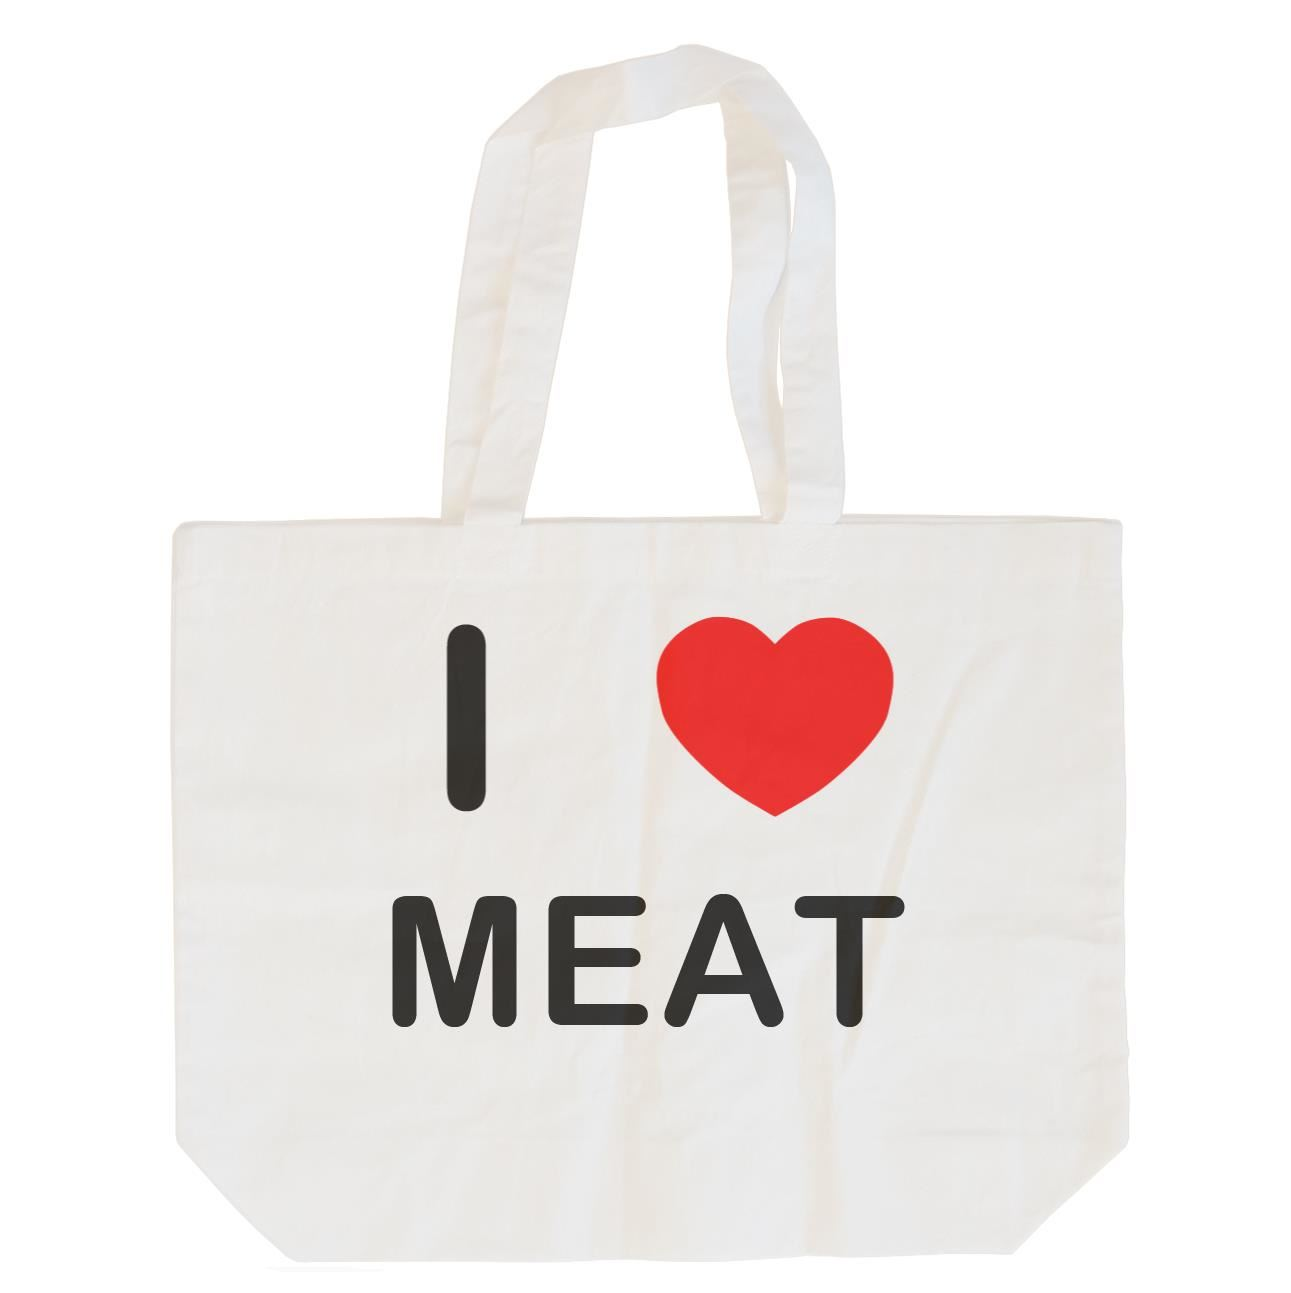 I Love Meat - Cotton Bag | Size choice Tote, Shopper or Sling